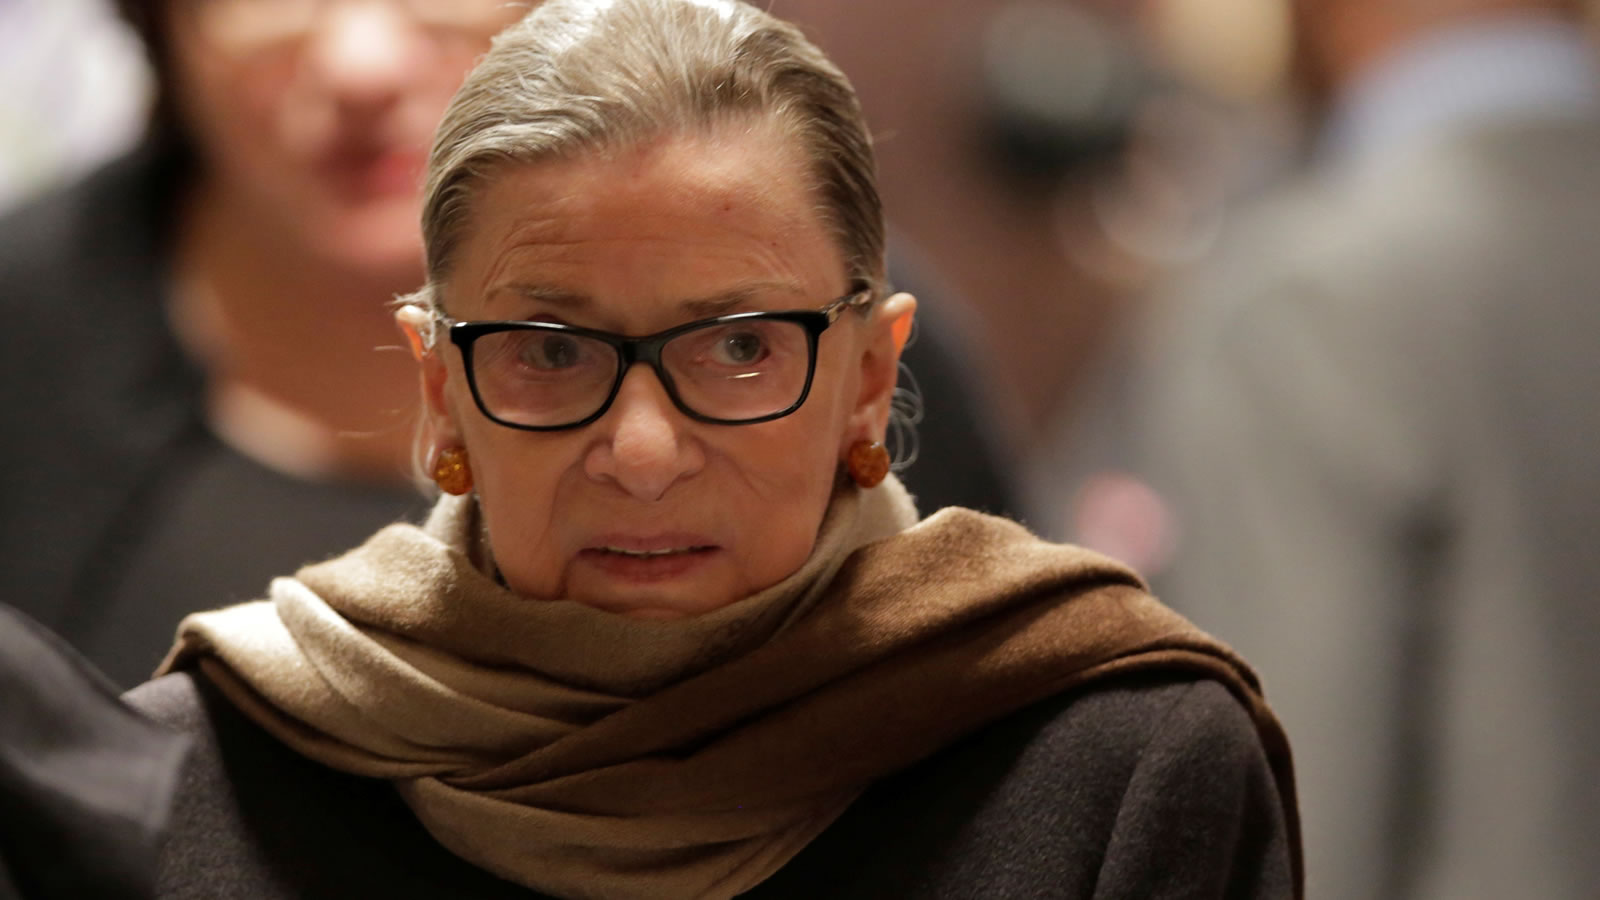 Democratic Candidates, Causes Rake in $300 Million in Small Dollar Donations after Ruth Bader Ginsburg's Death thumbnail